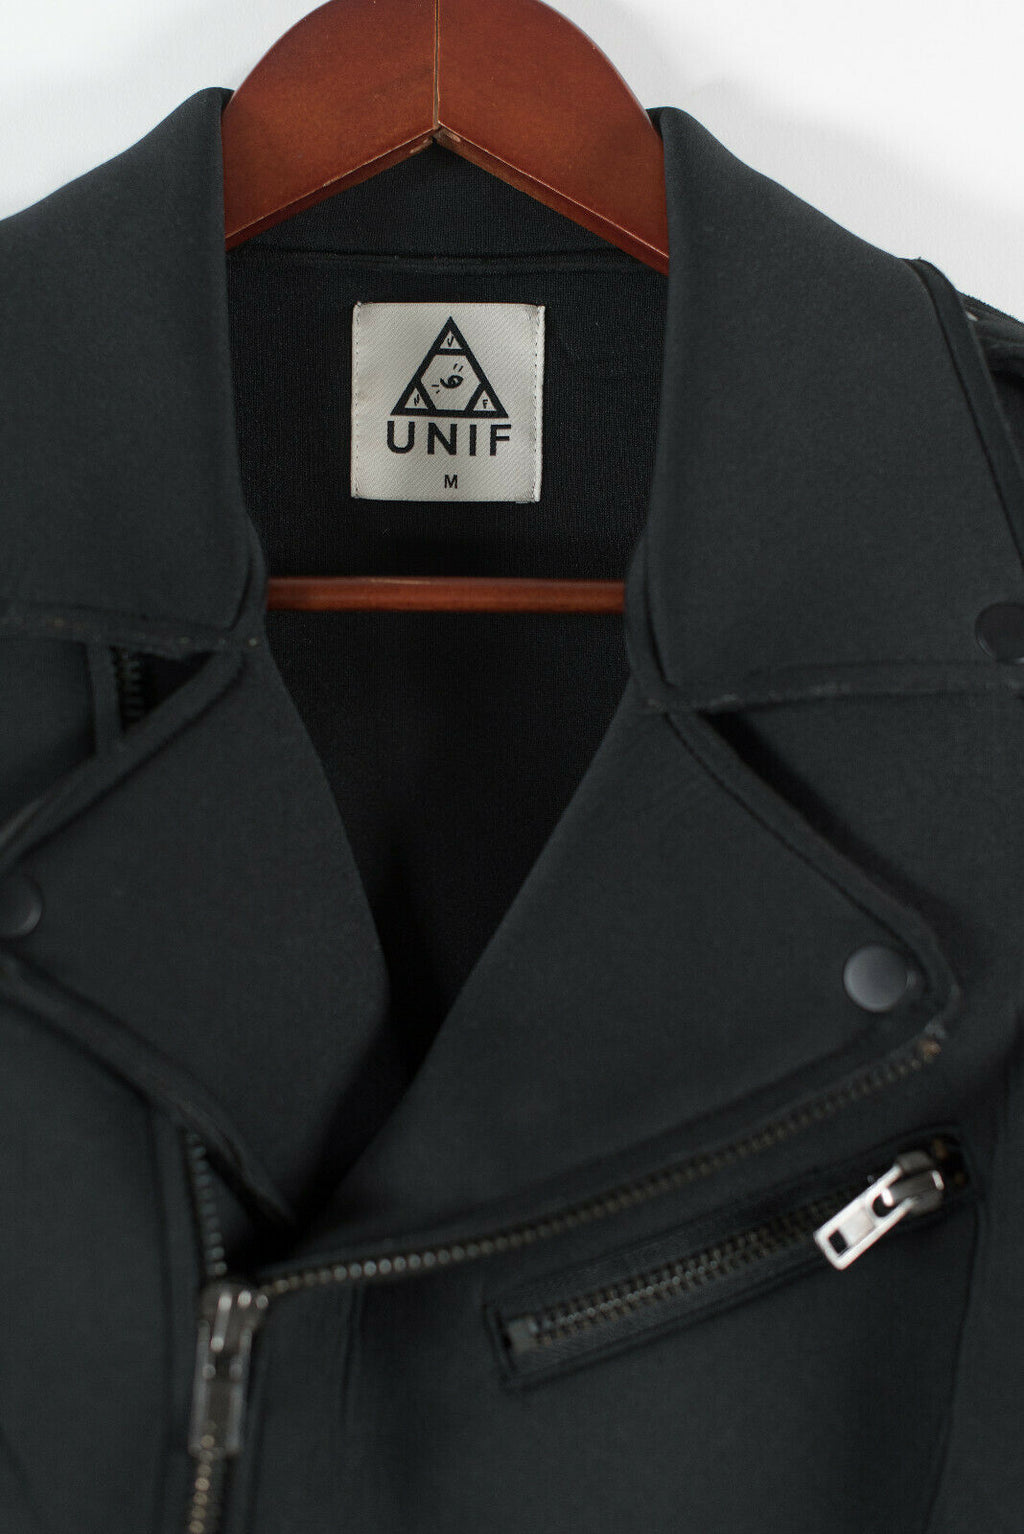 UNIF Womens Medium Black Jacket Boyfriend Moto Scuba Neoprene Zippered Pocket